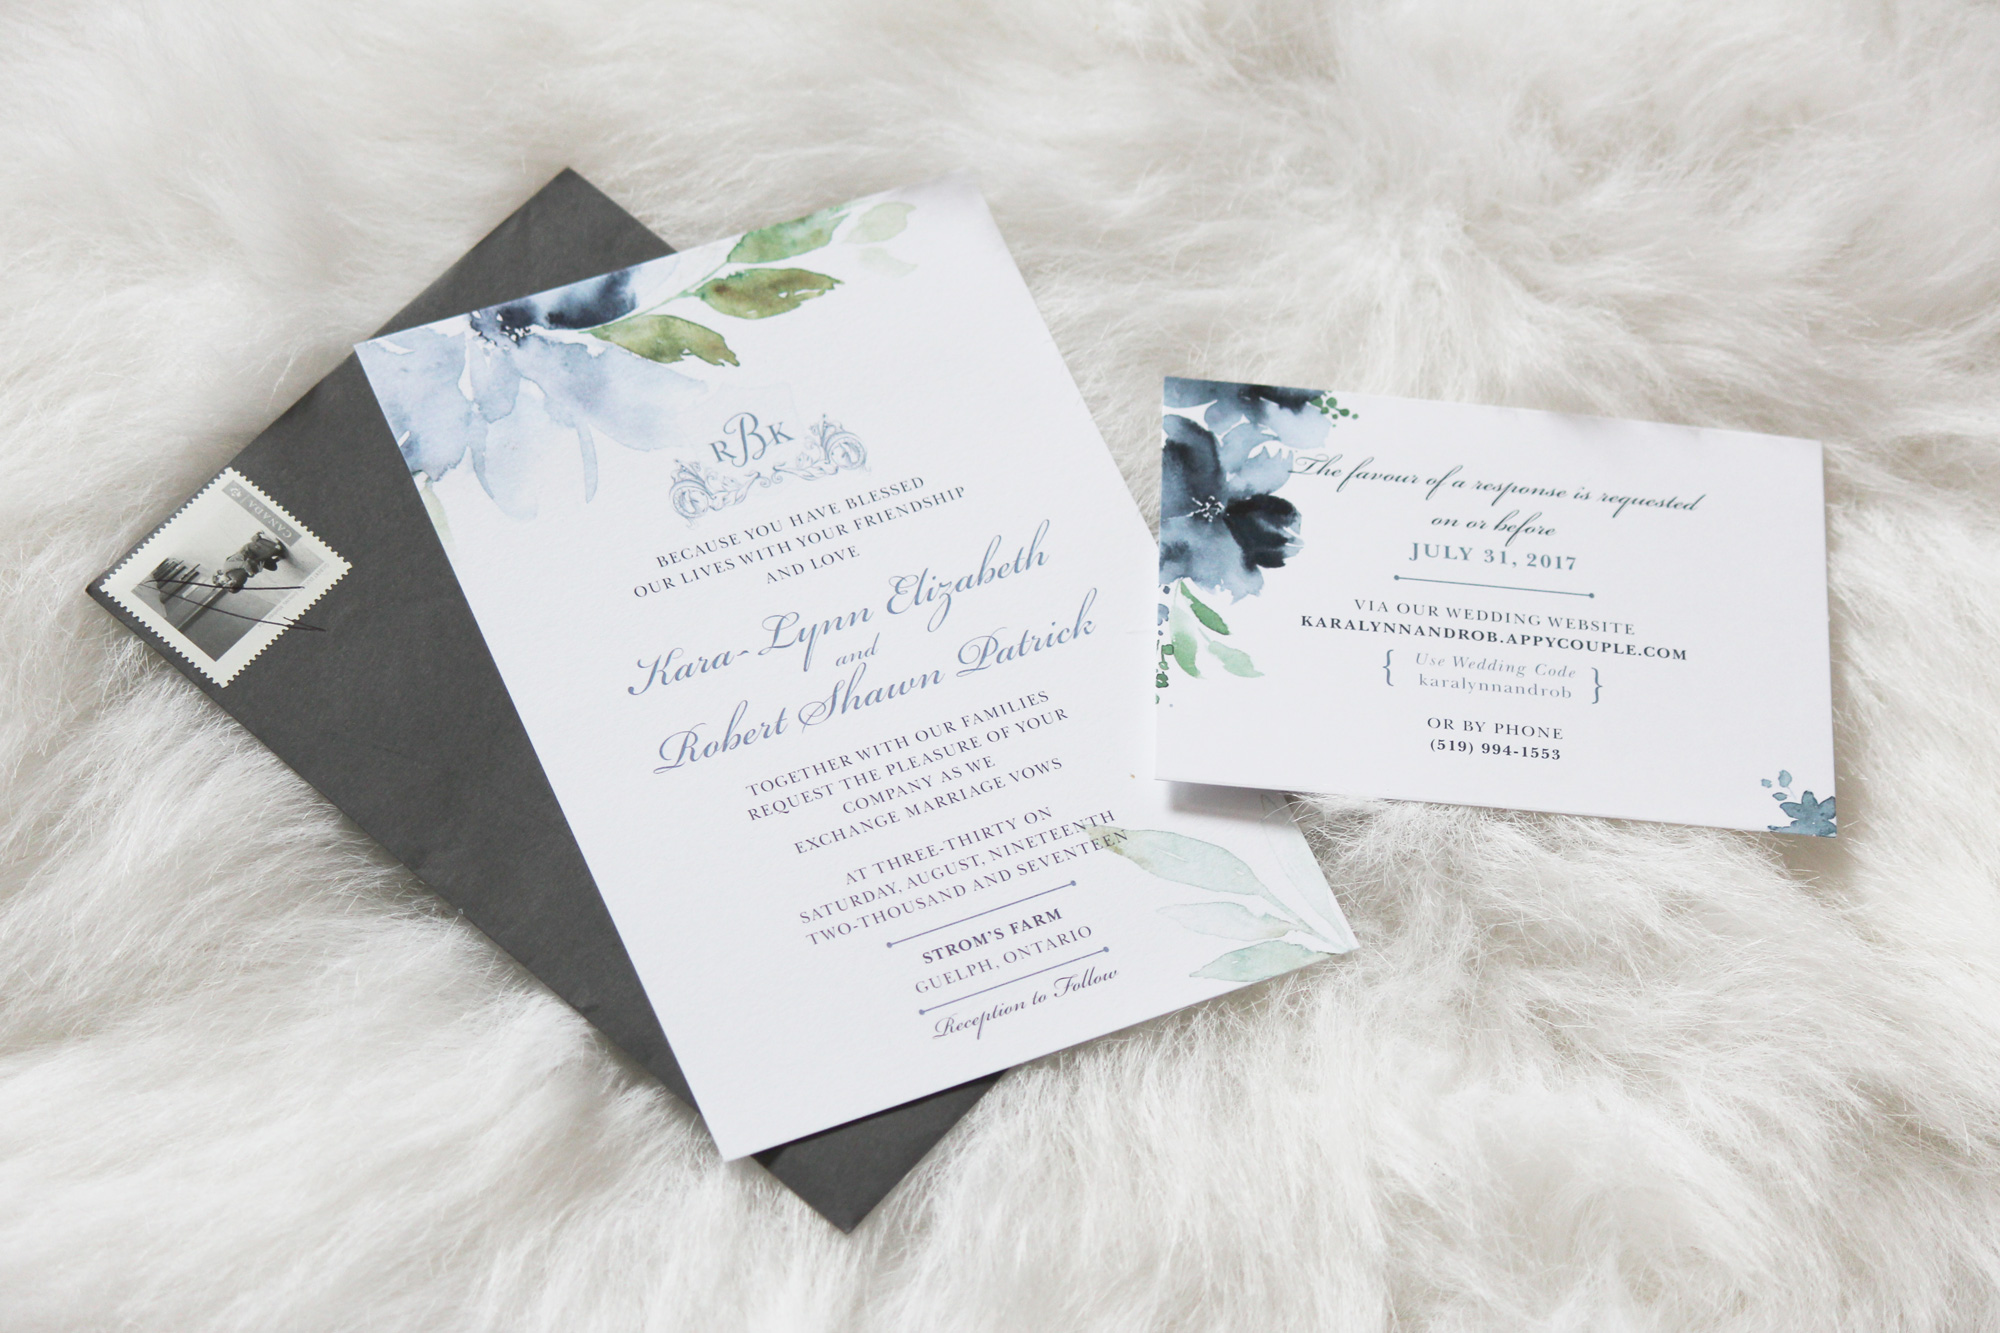 claricegomesdesigns-Wedding-invitation-KLB